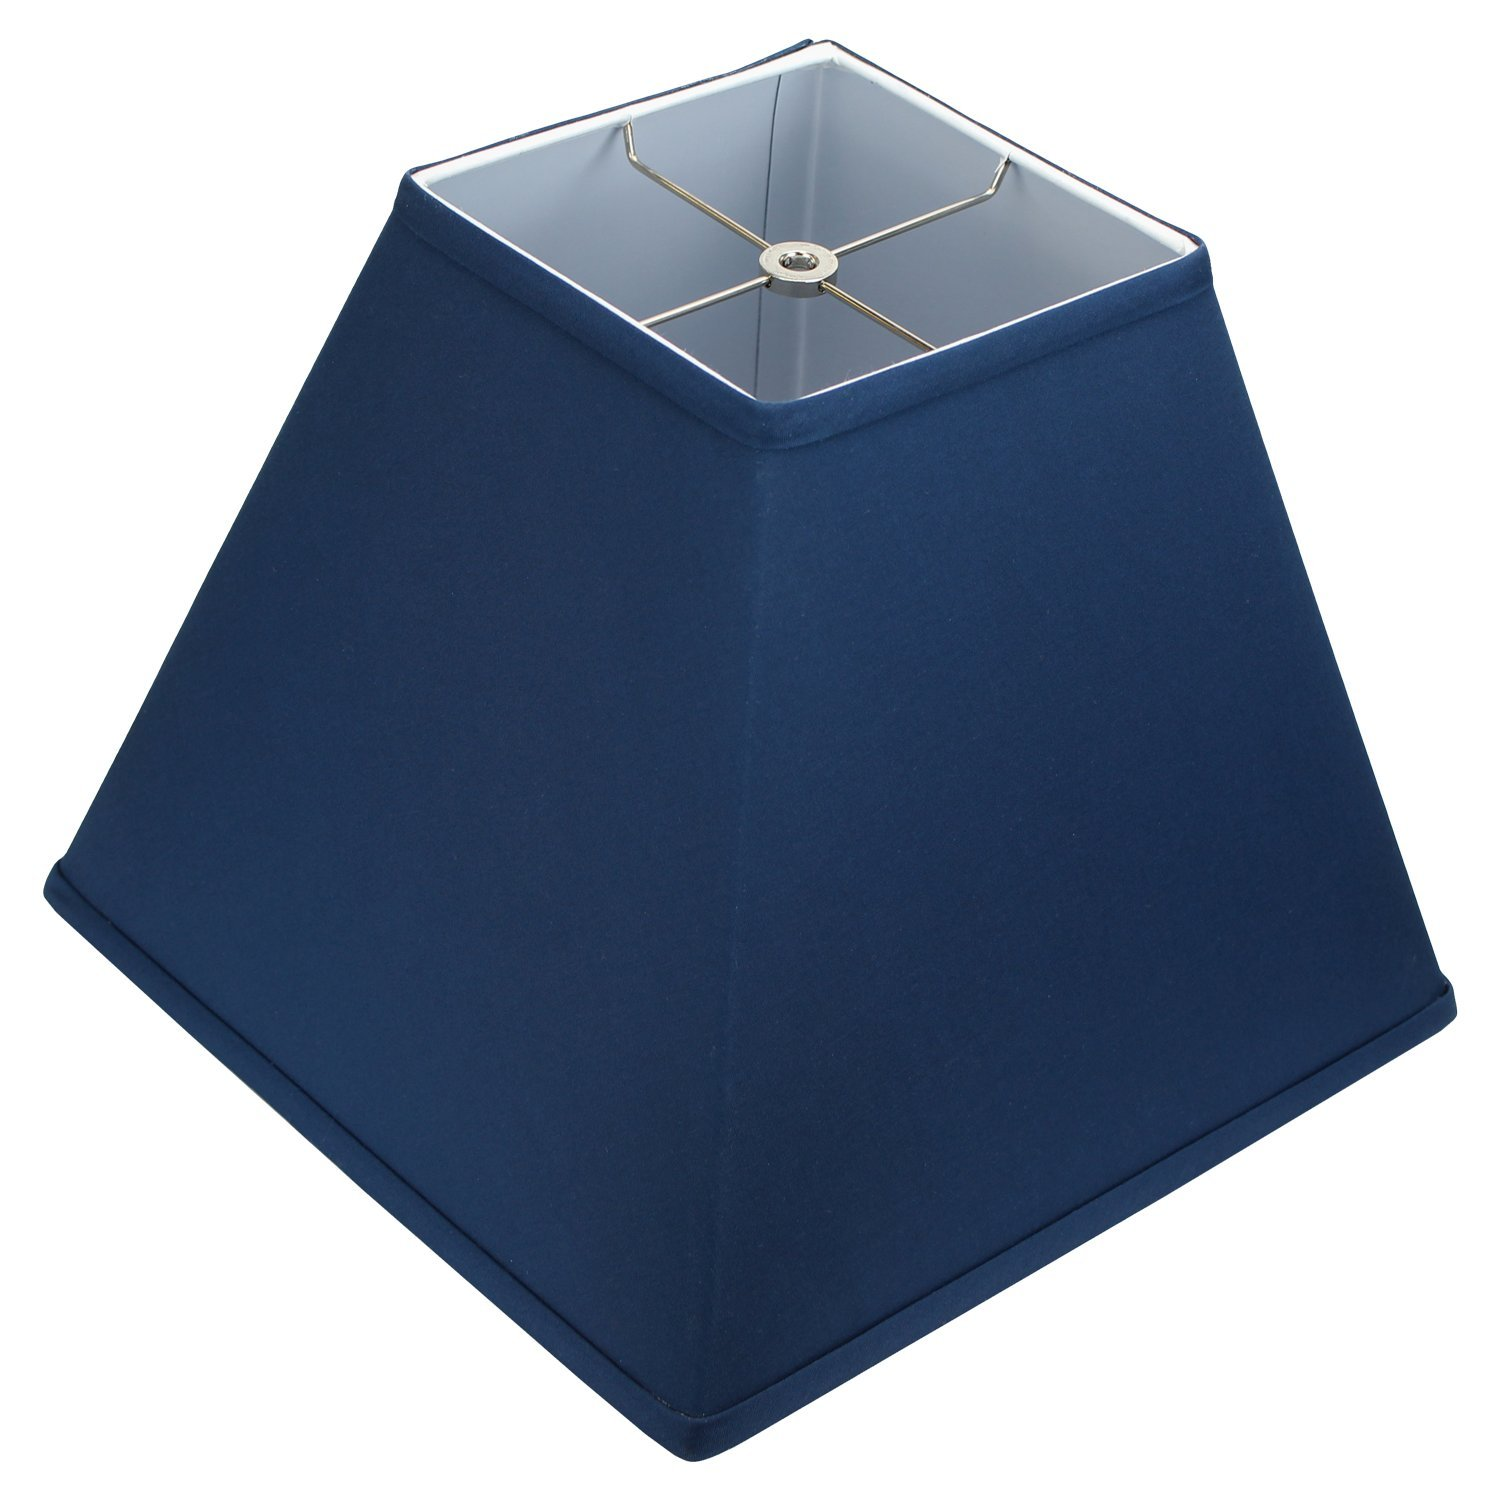 FenchelShades.com 7'' Top Dimension x 14'' Bottom Dimension 12'' Slant Height Fabric Square Lampshade Spider Attachment (Navy Blue)